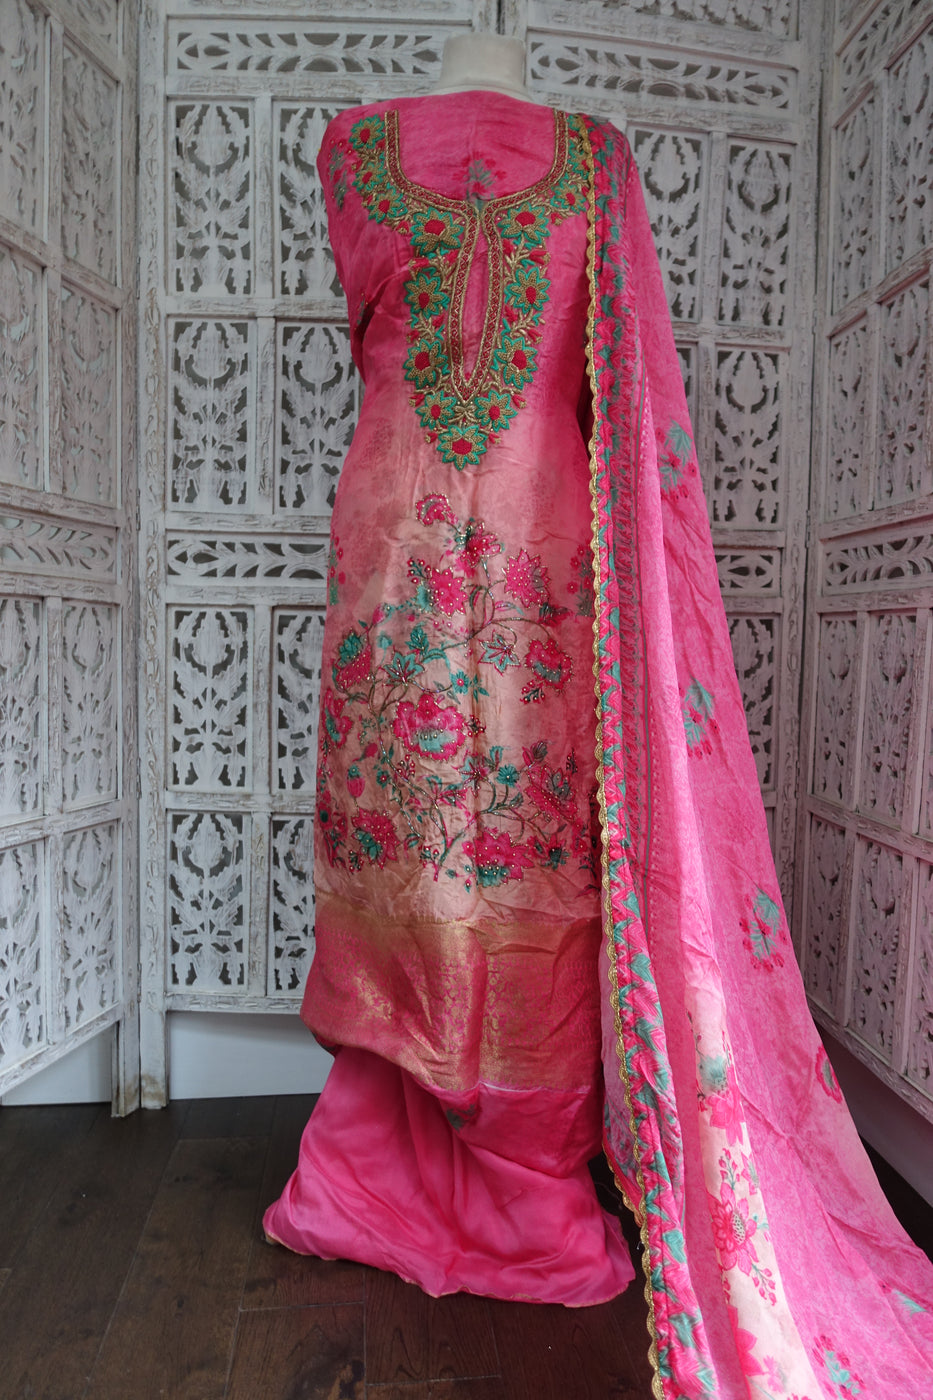 Pink Crepe Silk Unstitched Suit With Zardosi Detailing - Indian Suit Company